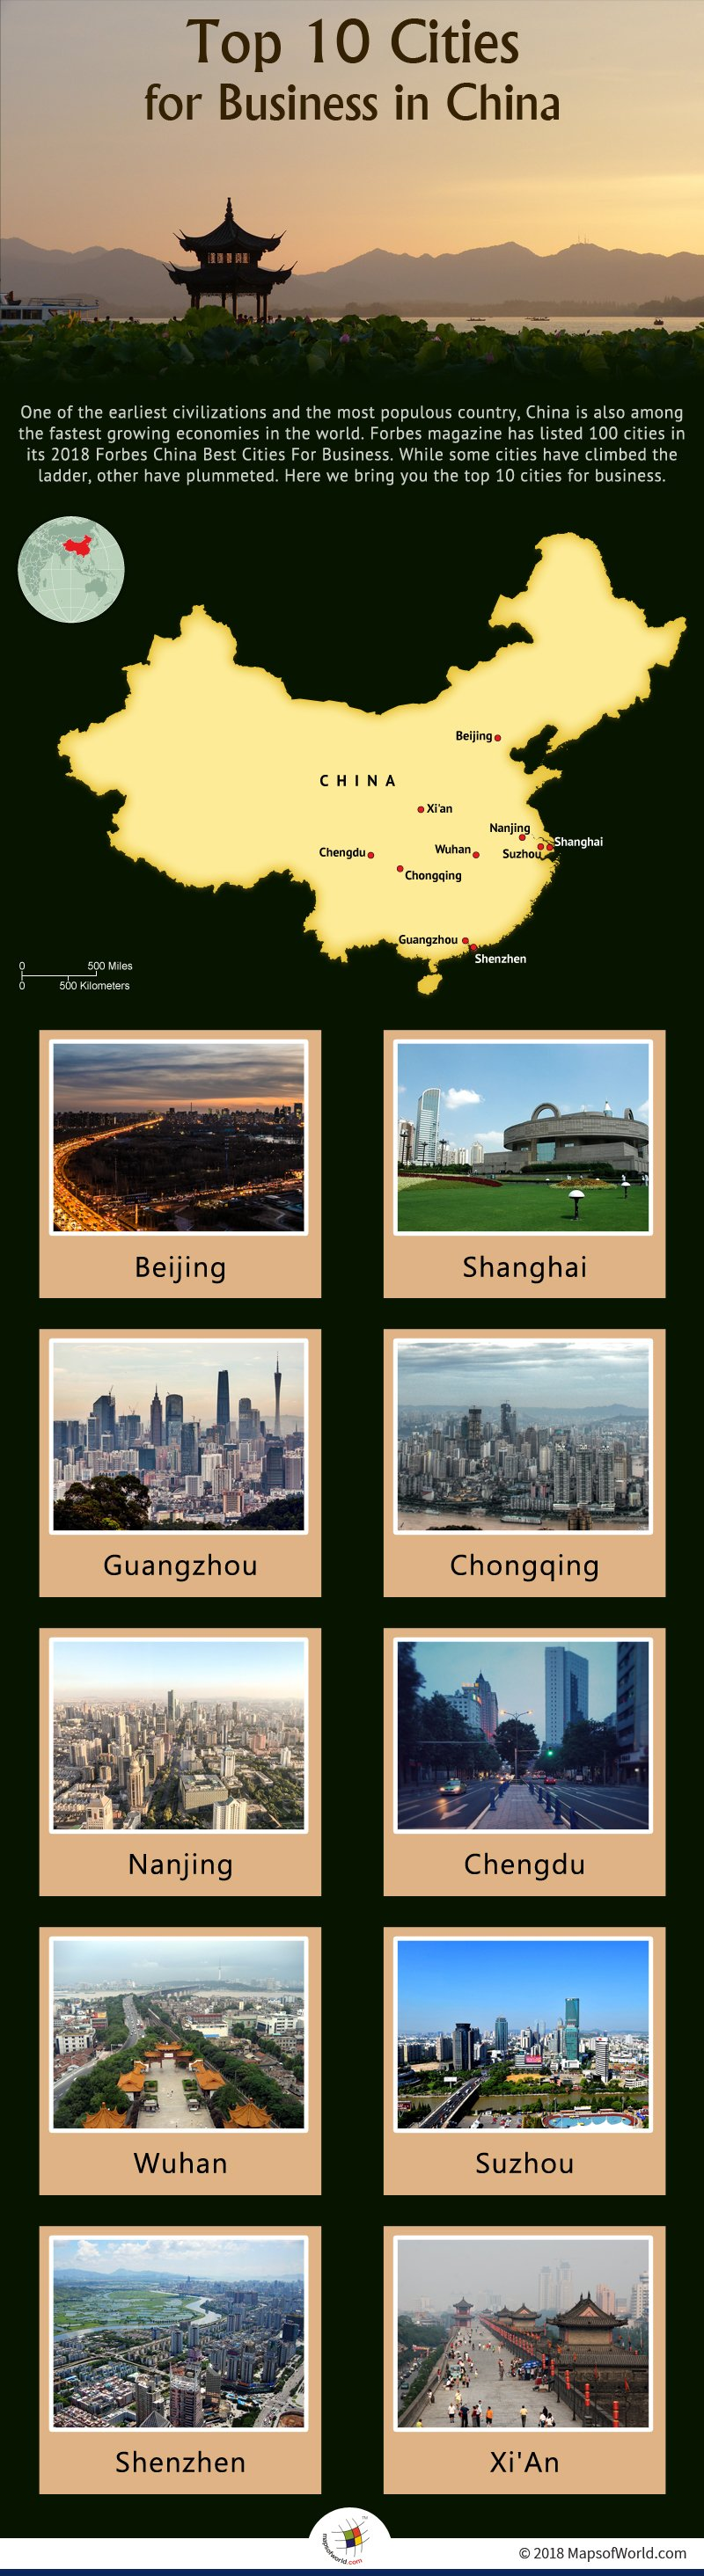 What are the top ten cities for business in China?